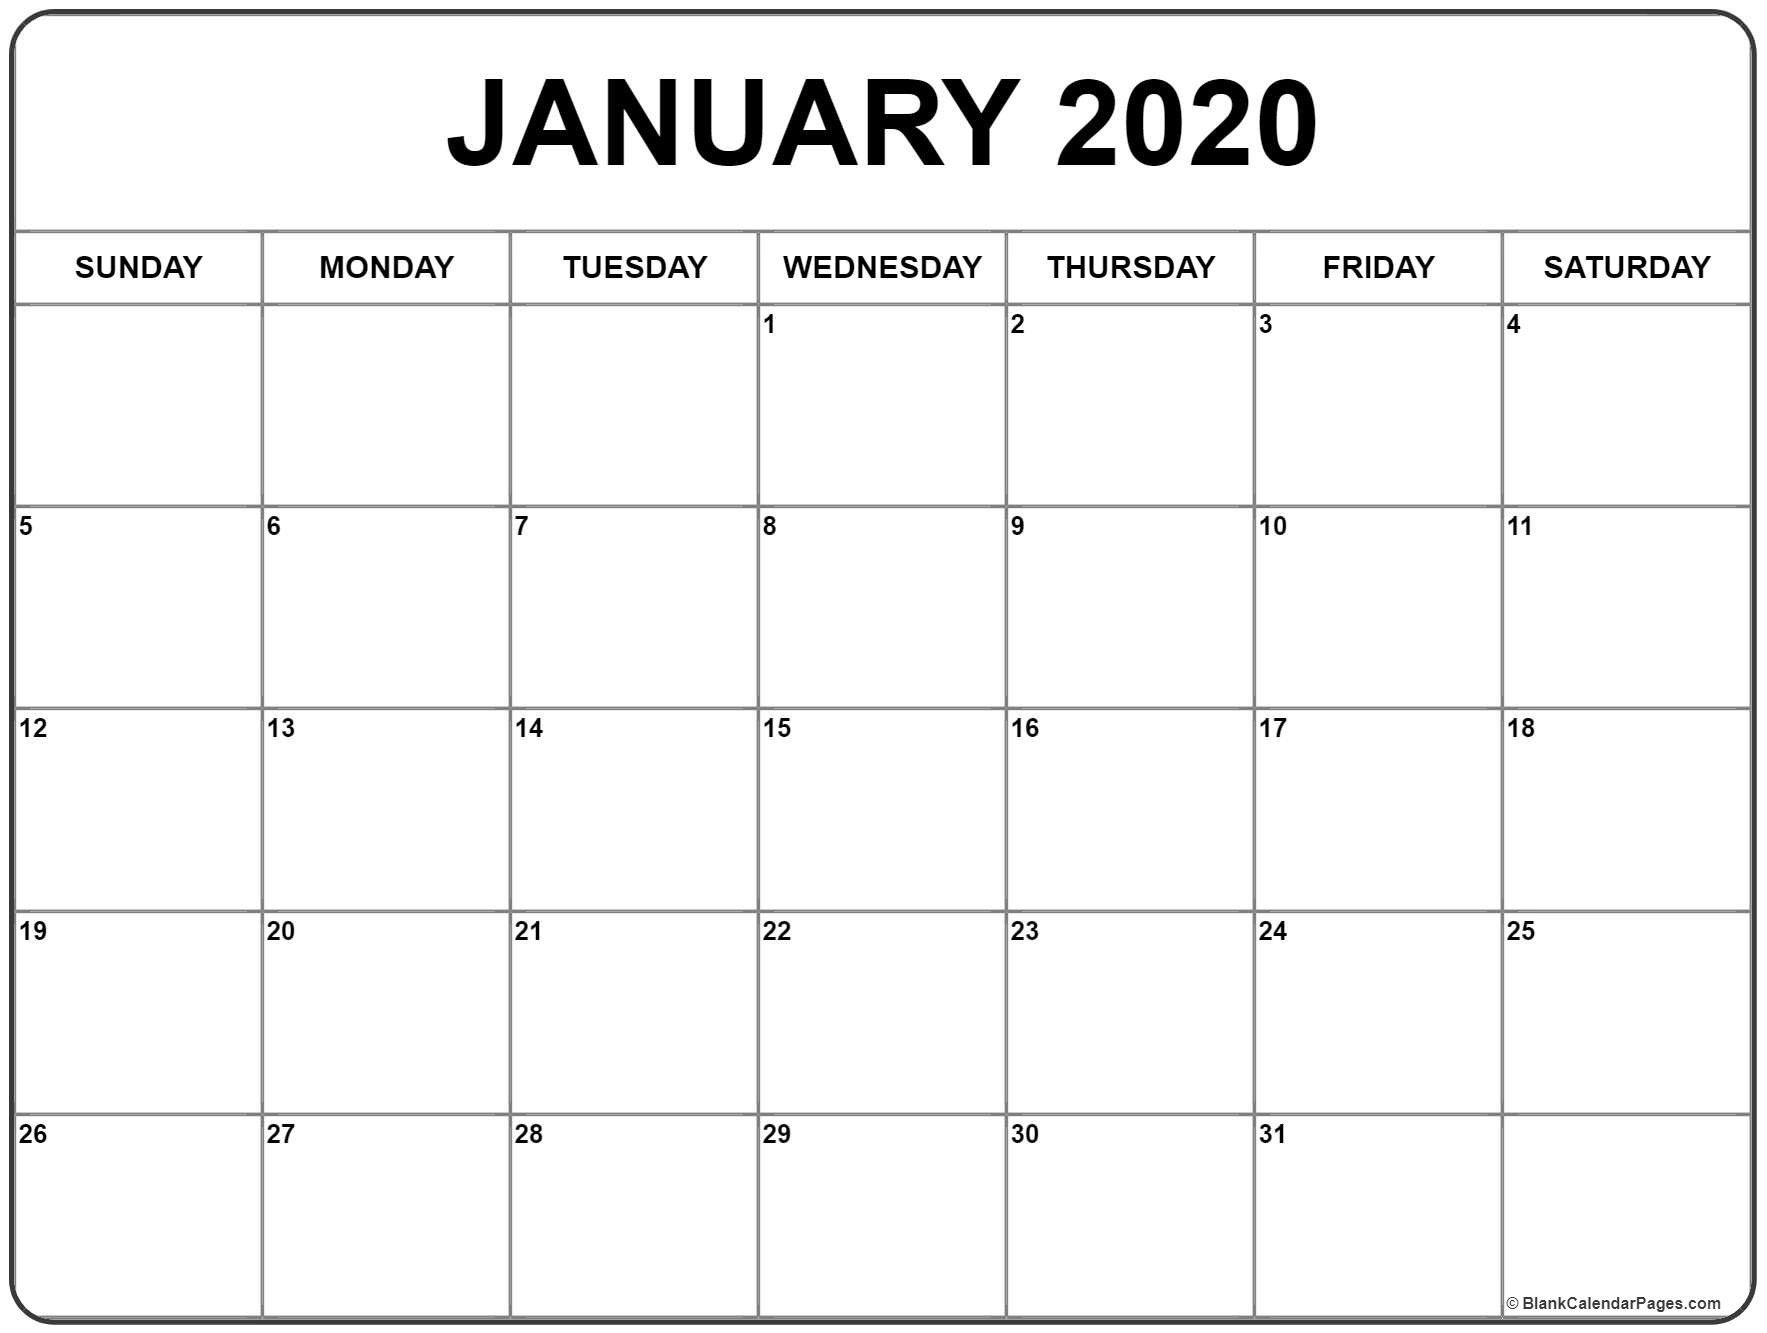 January 2020 Calendar 56 Templates Of 2020 Printable January for Fill In Calendar 2020 Printable